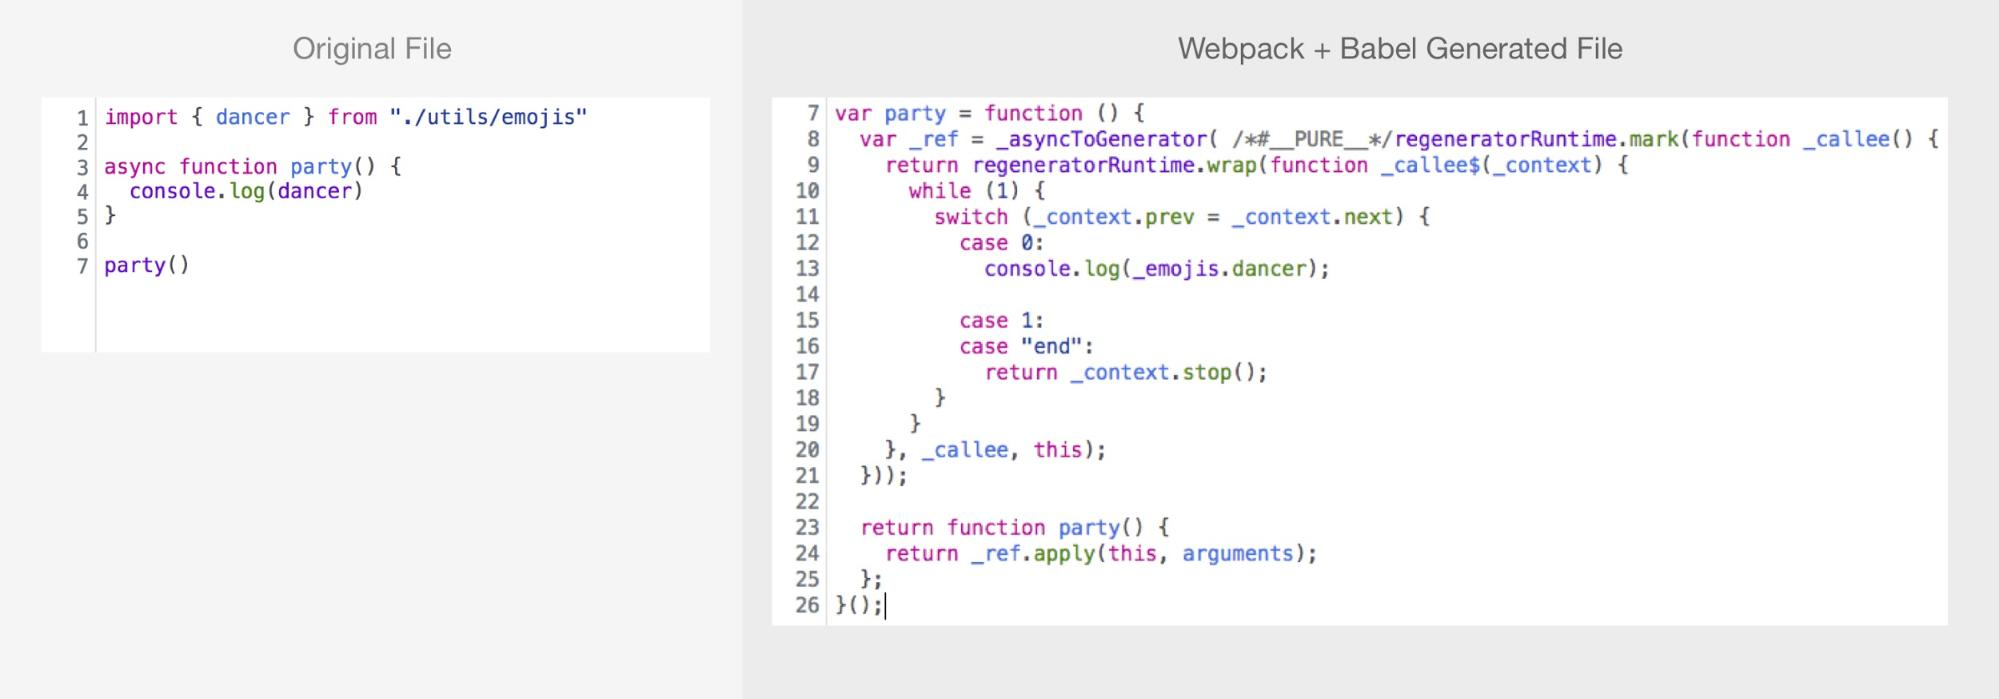 In the example below, we use Webpack and Babel to compile ES Modules and async functions into vanilla JS. The original code on the left is pretty simple. The generated, browser-compatible code on the right is much more complicated.